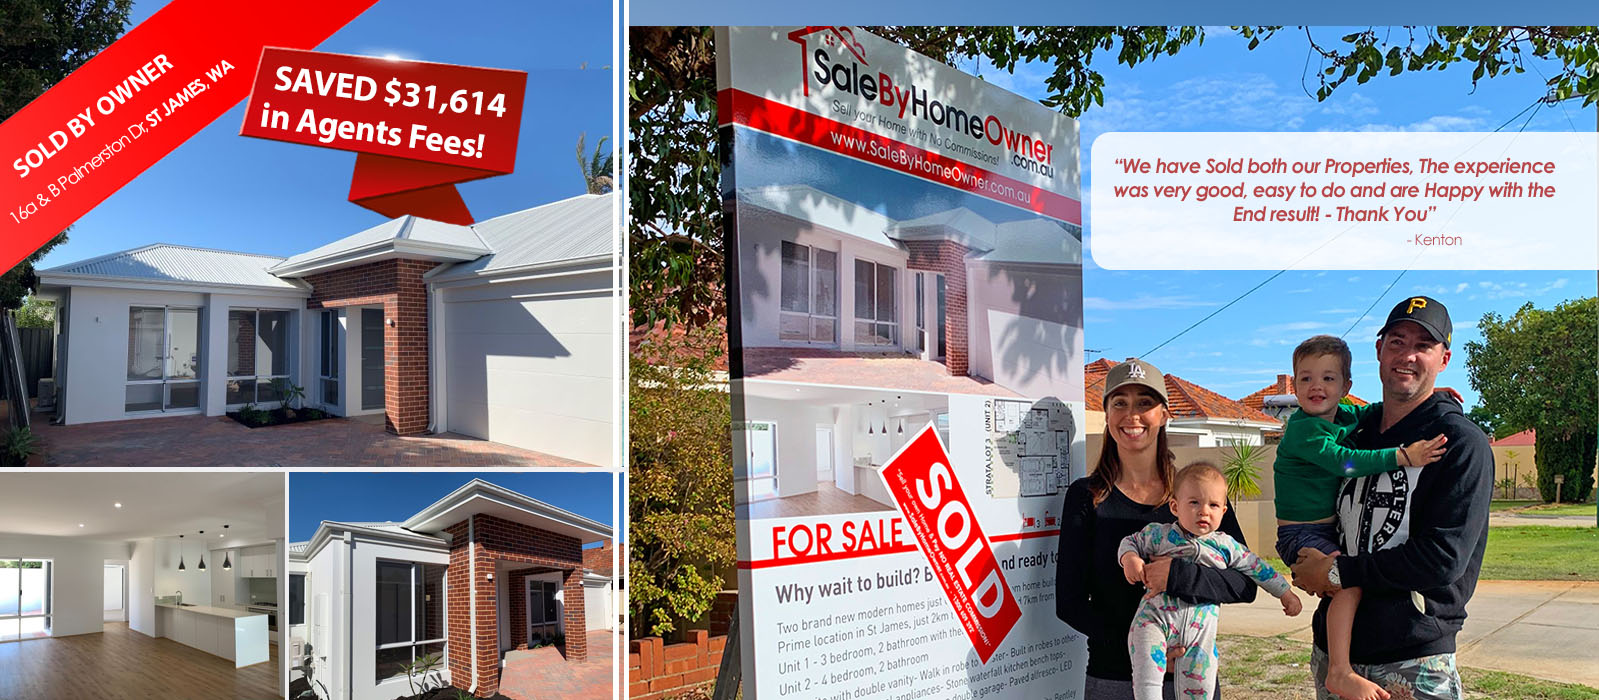 Homes For Sale By Owner in VIC, view Houses for sale privately in victoria